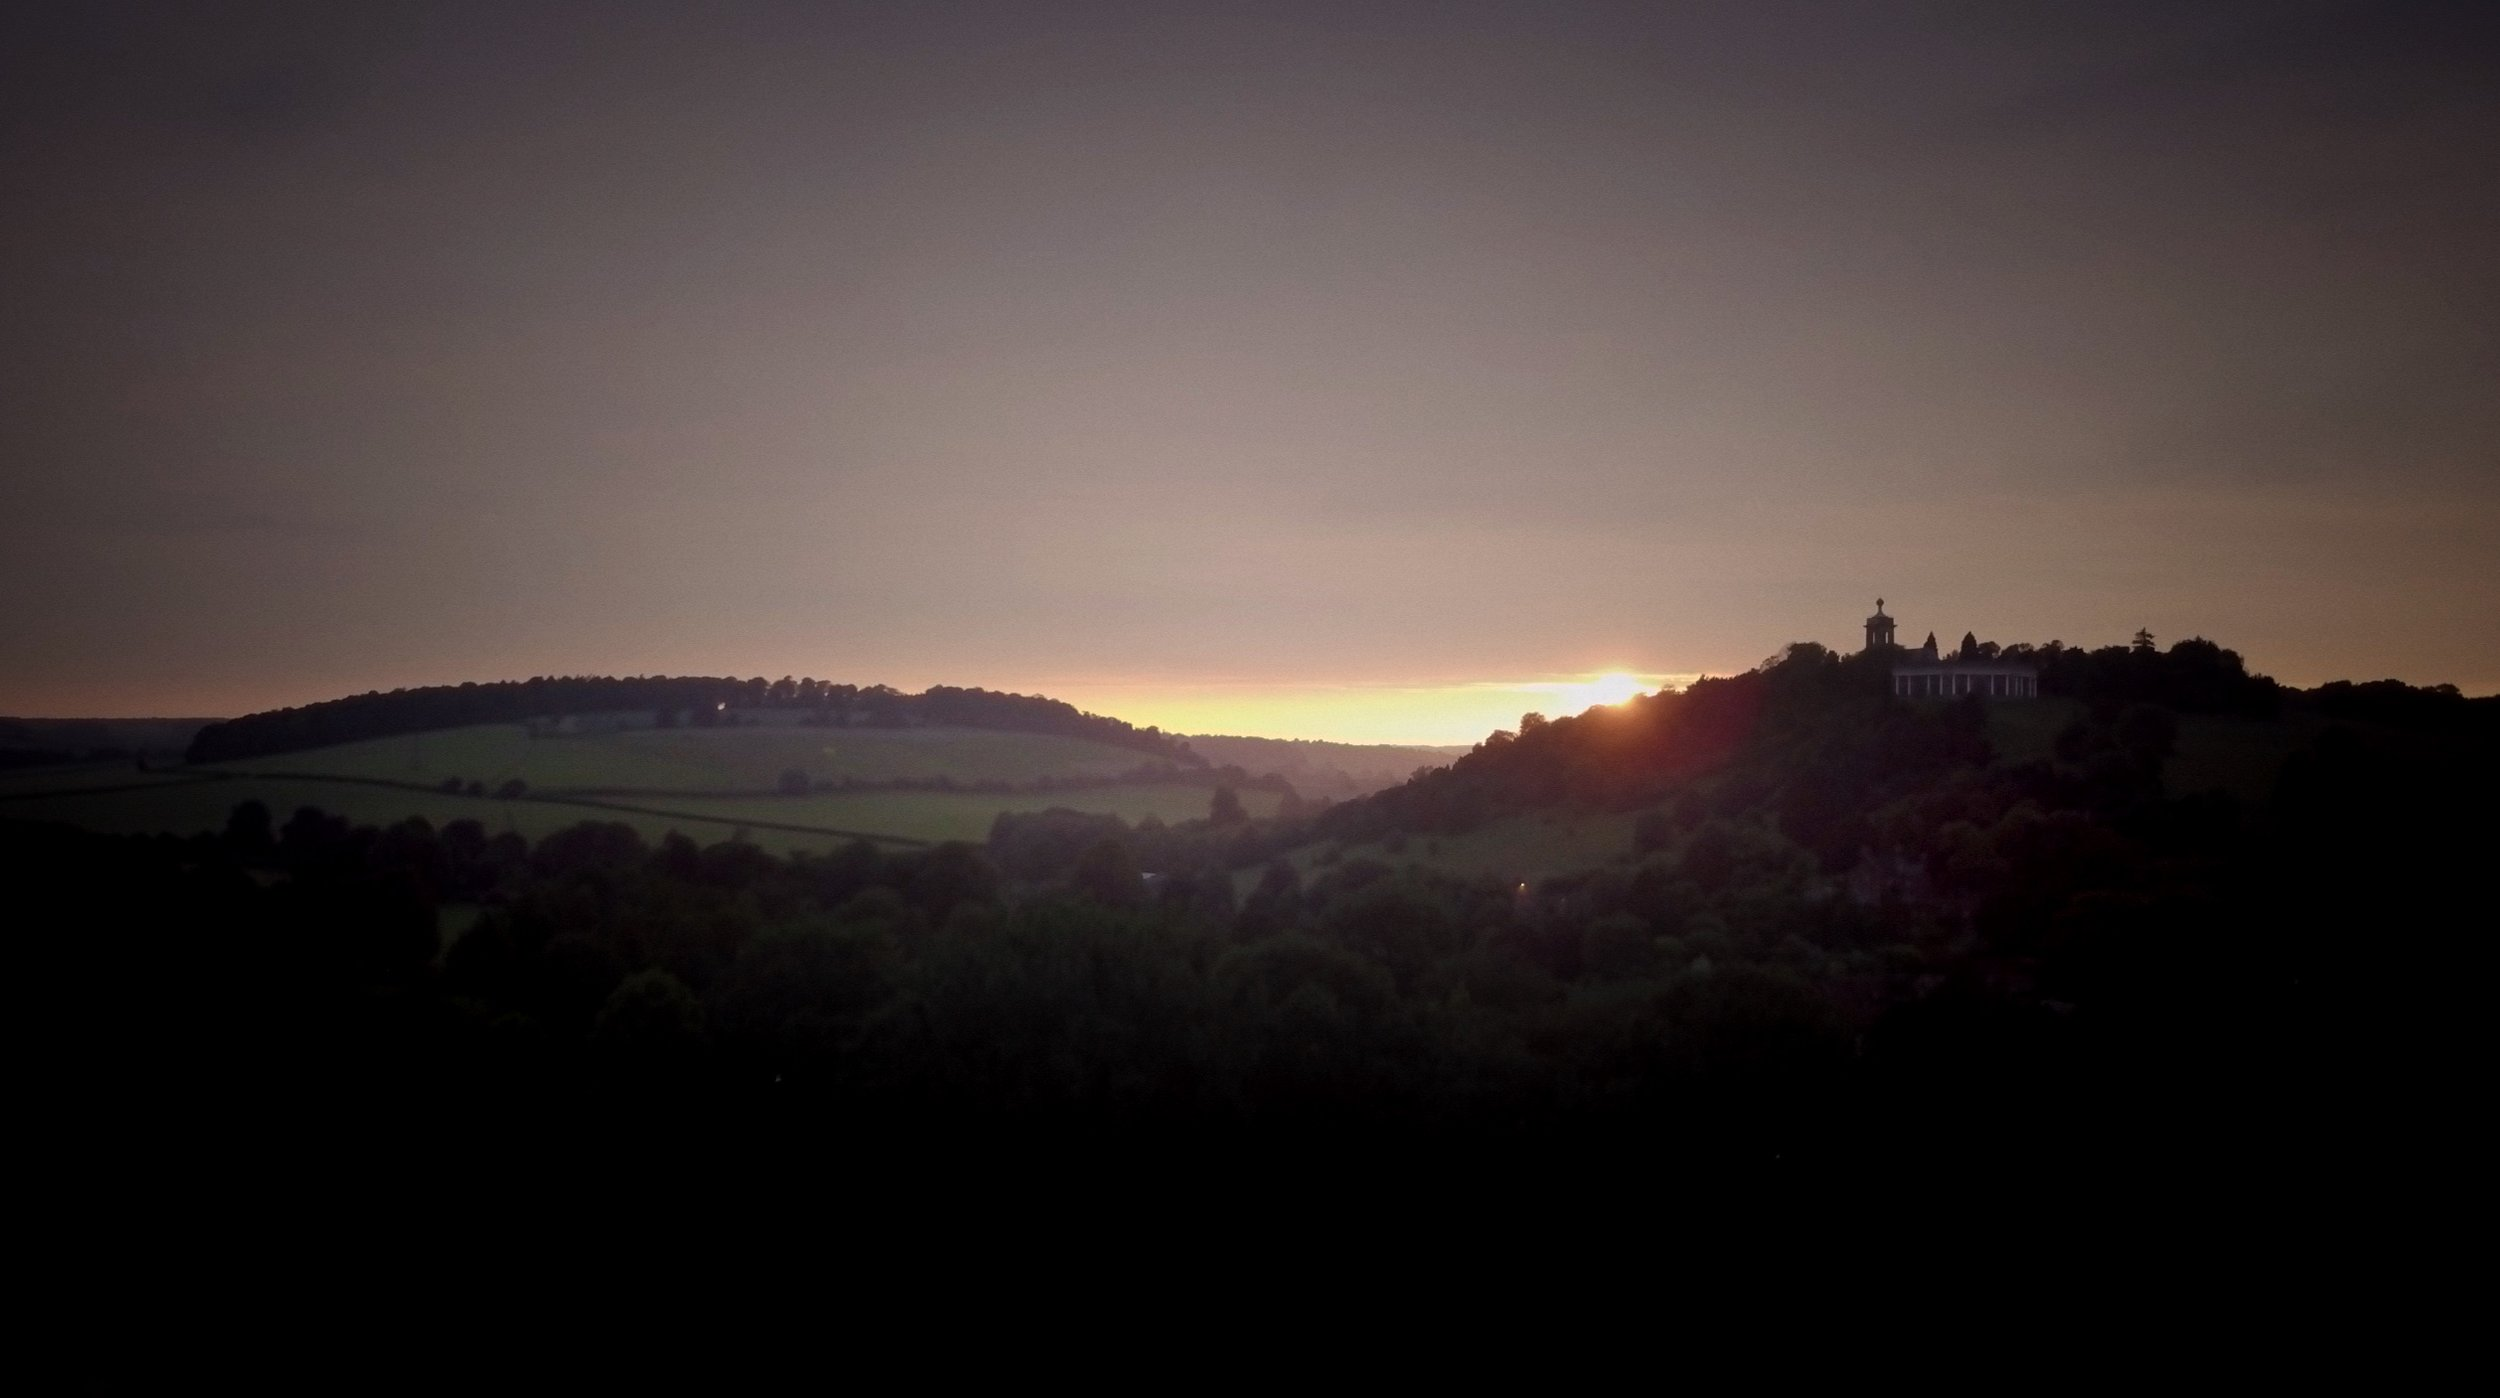 Wedding film final scene - sun set's over couple's wedding at West Wycombe Park